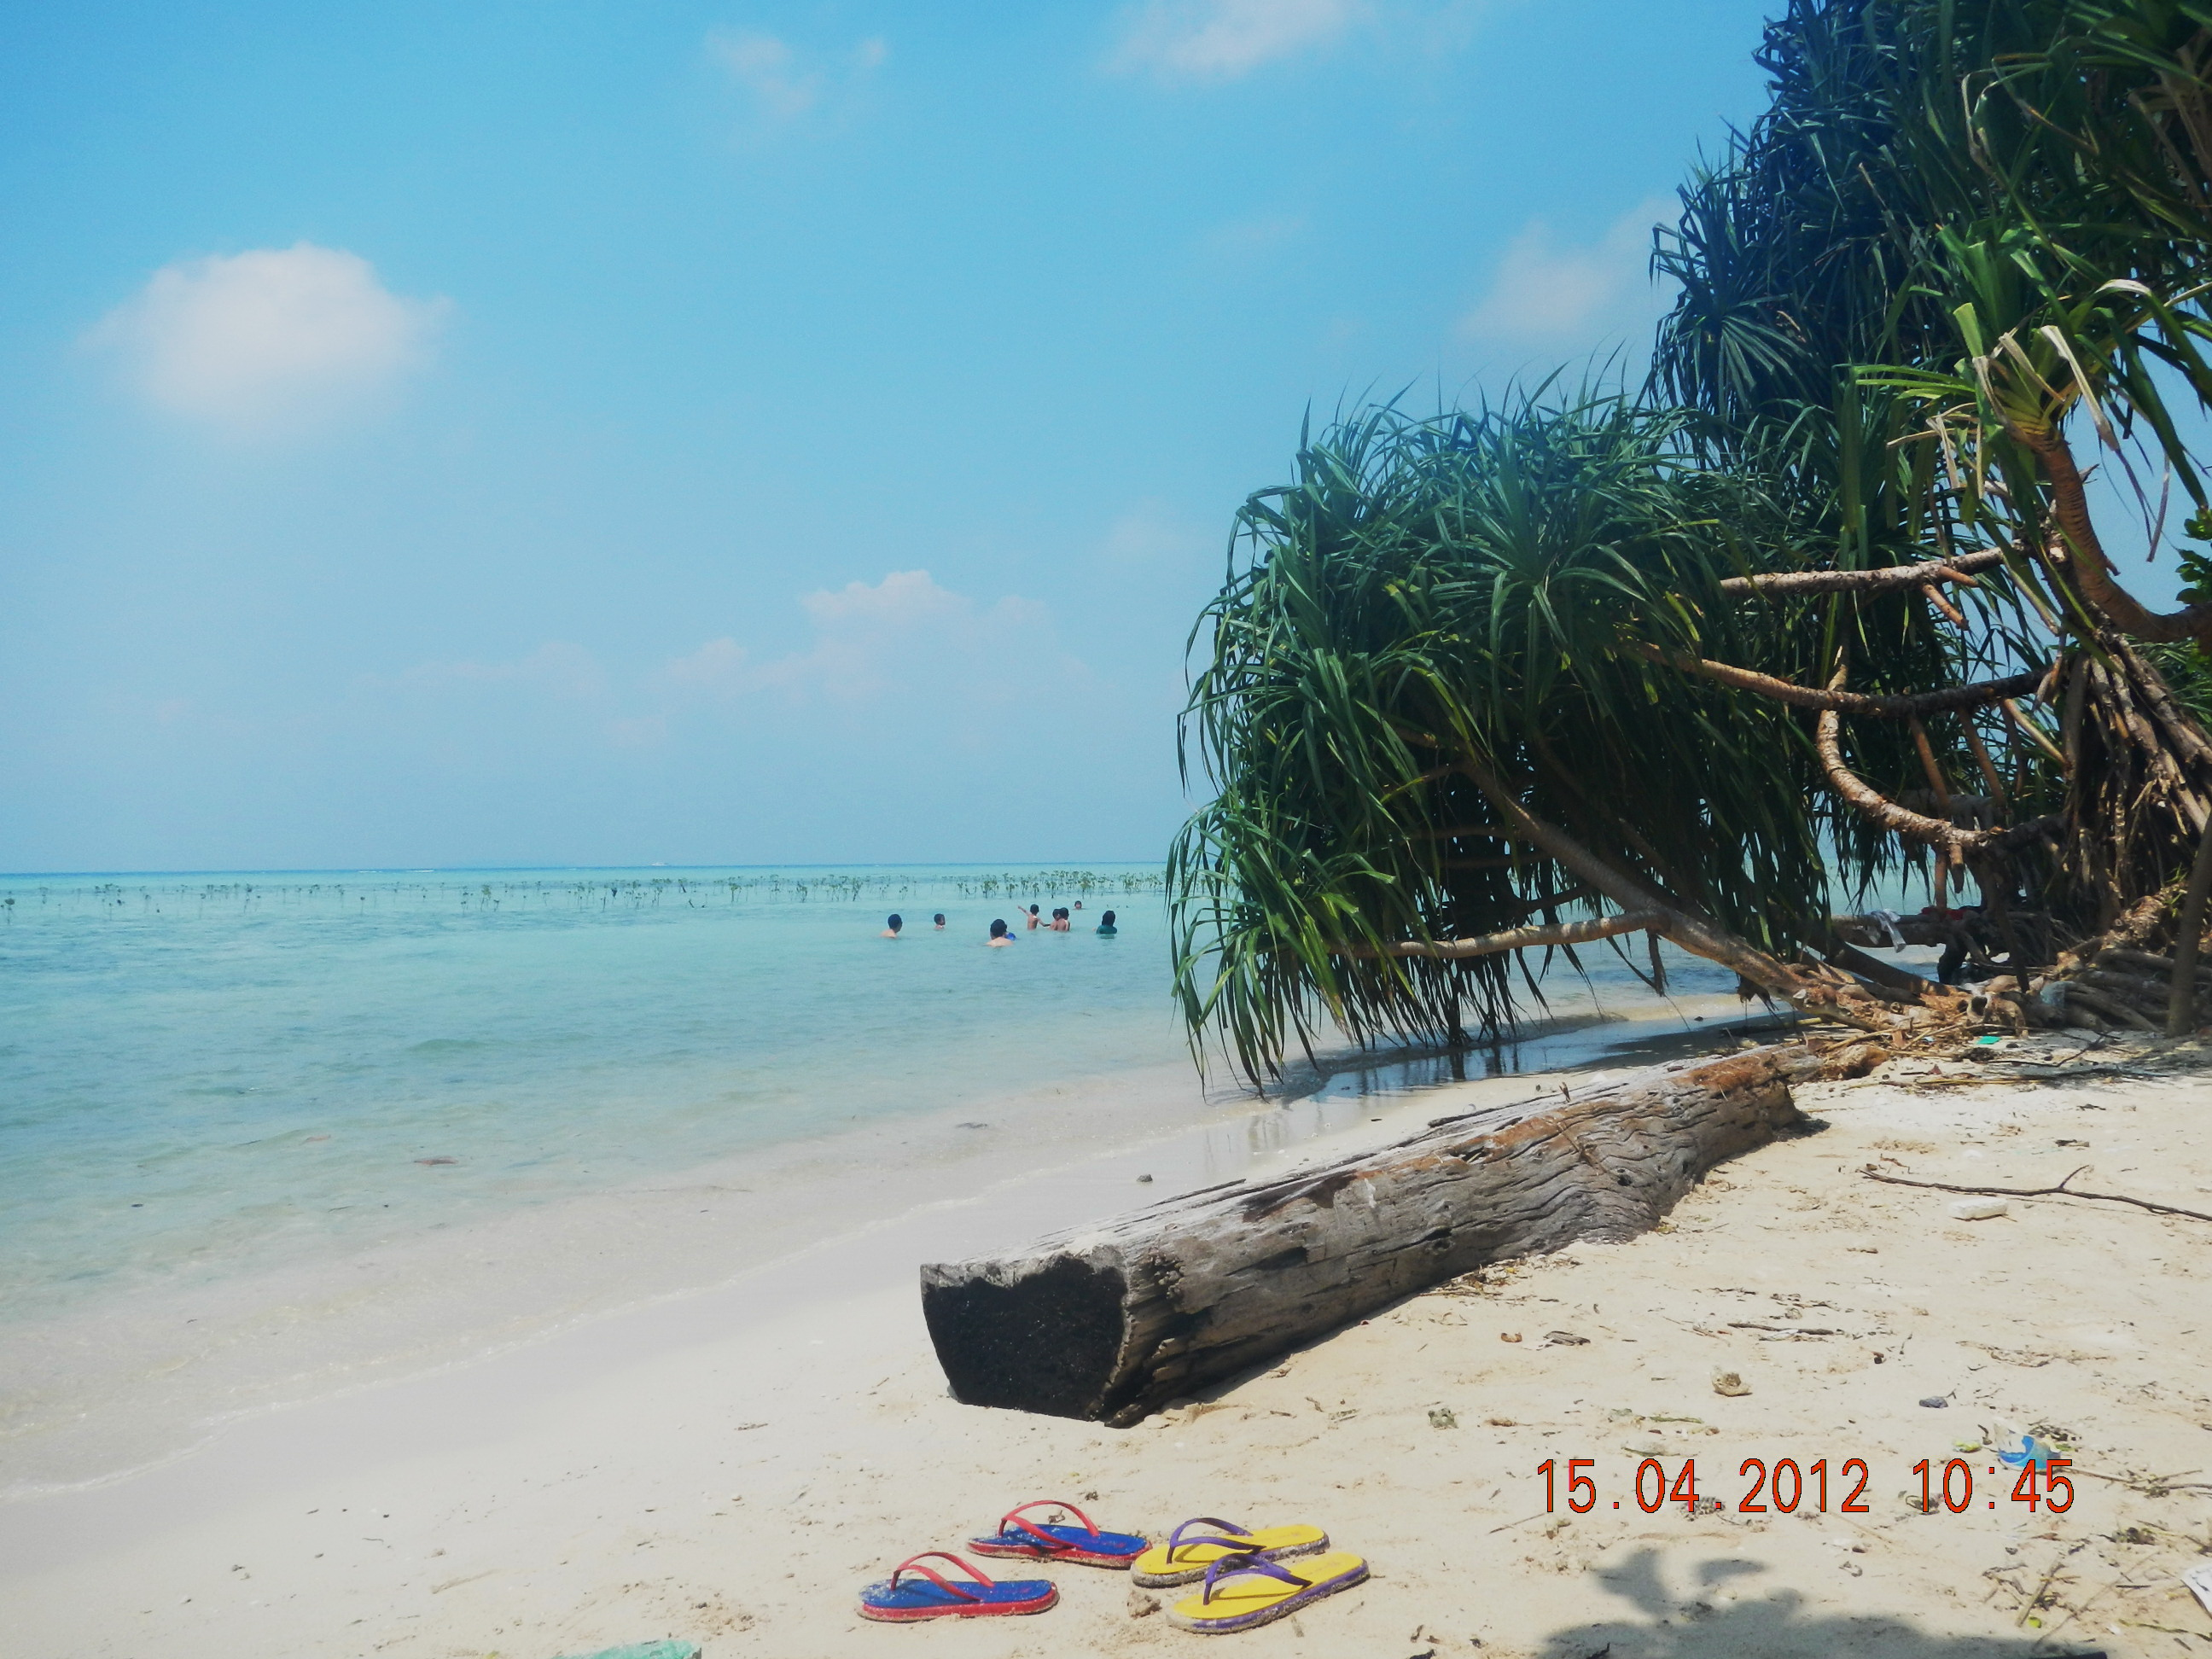 Download this Pulau Sangiang picture